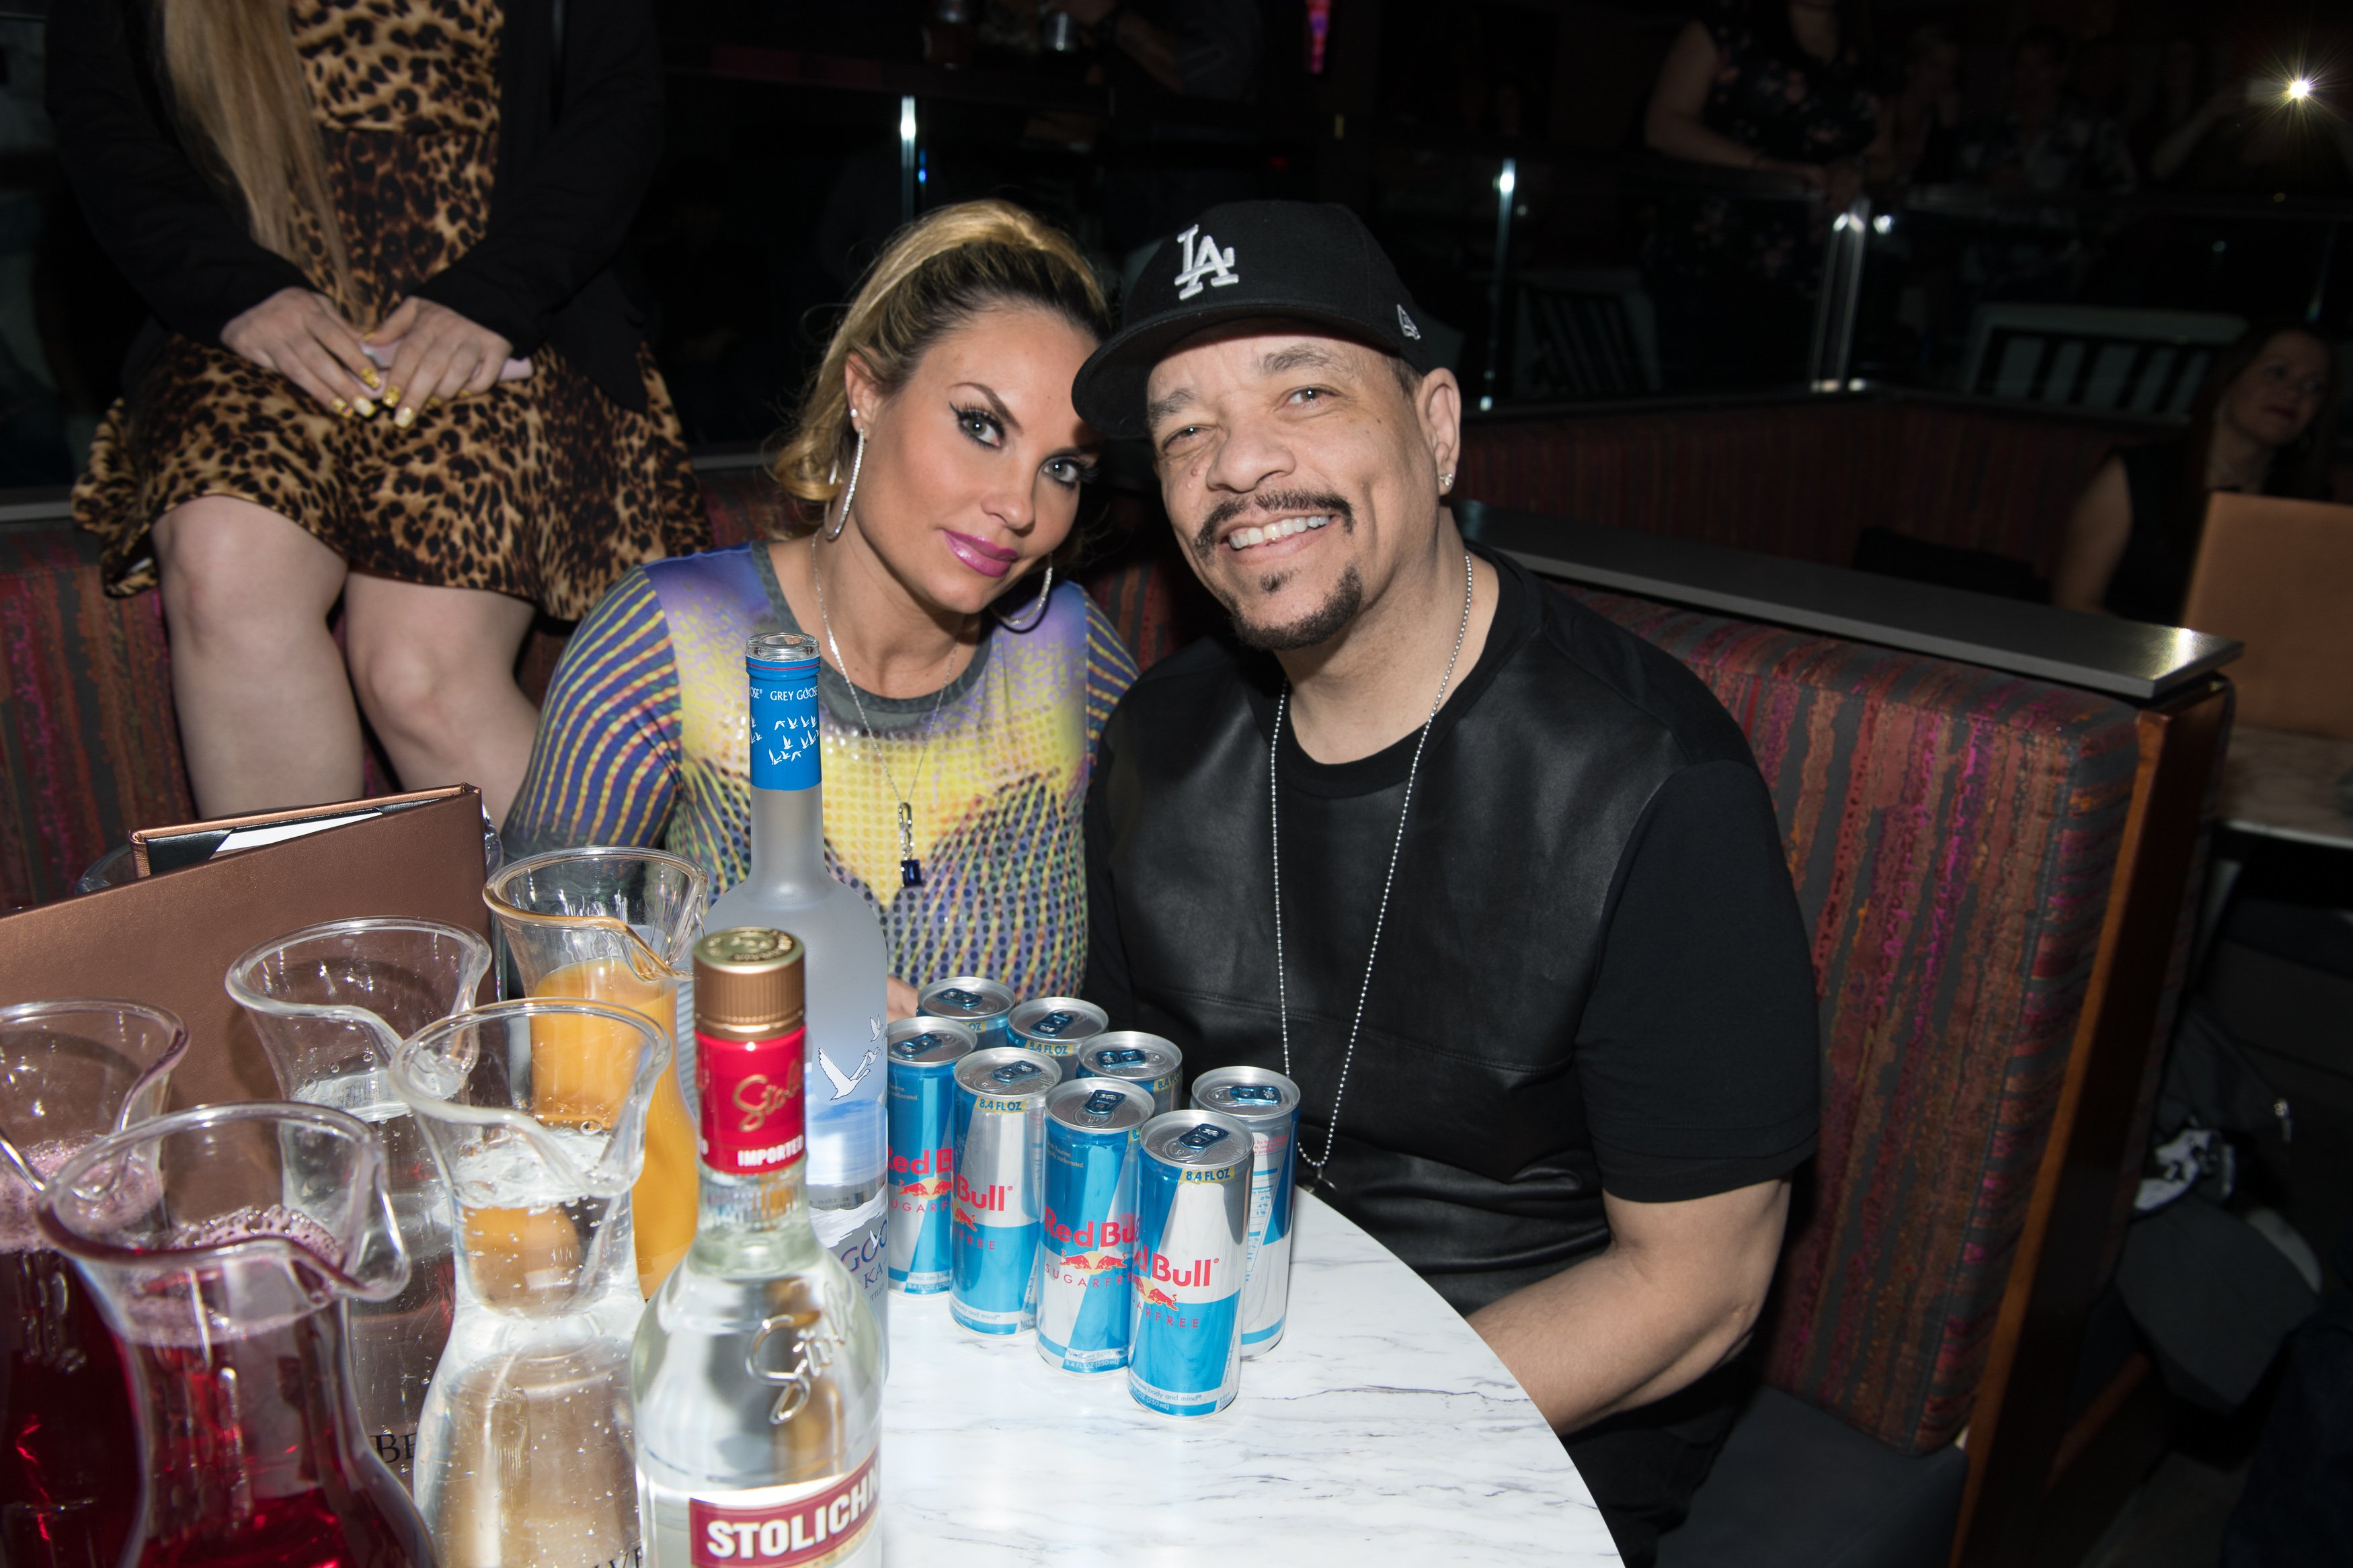 Ice-T and his wife Coco Austin at a party | Photo: Getty Images